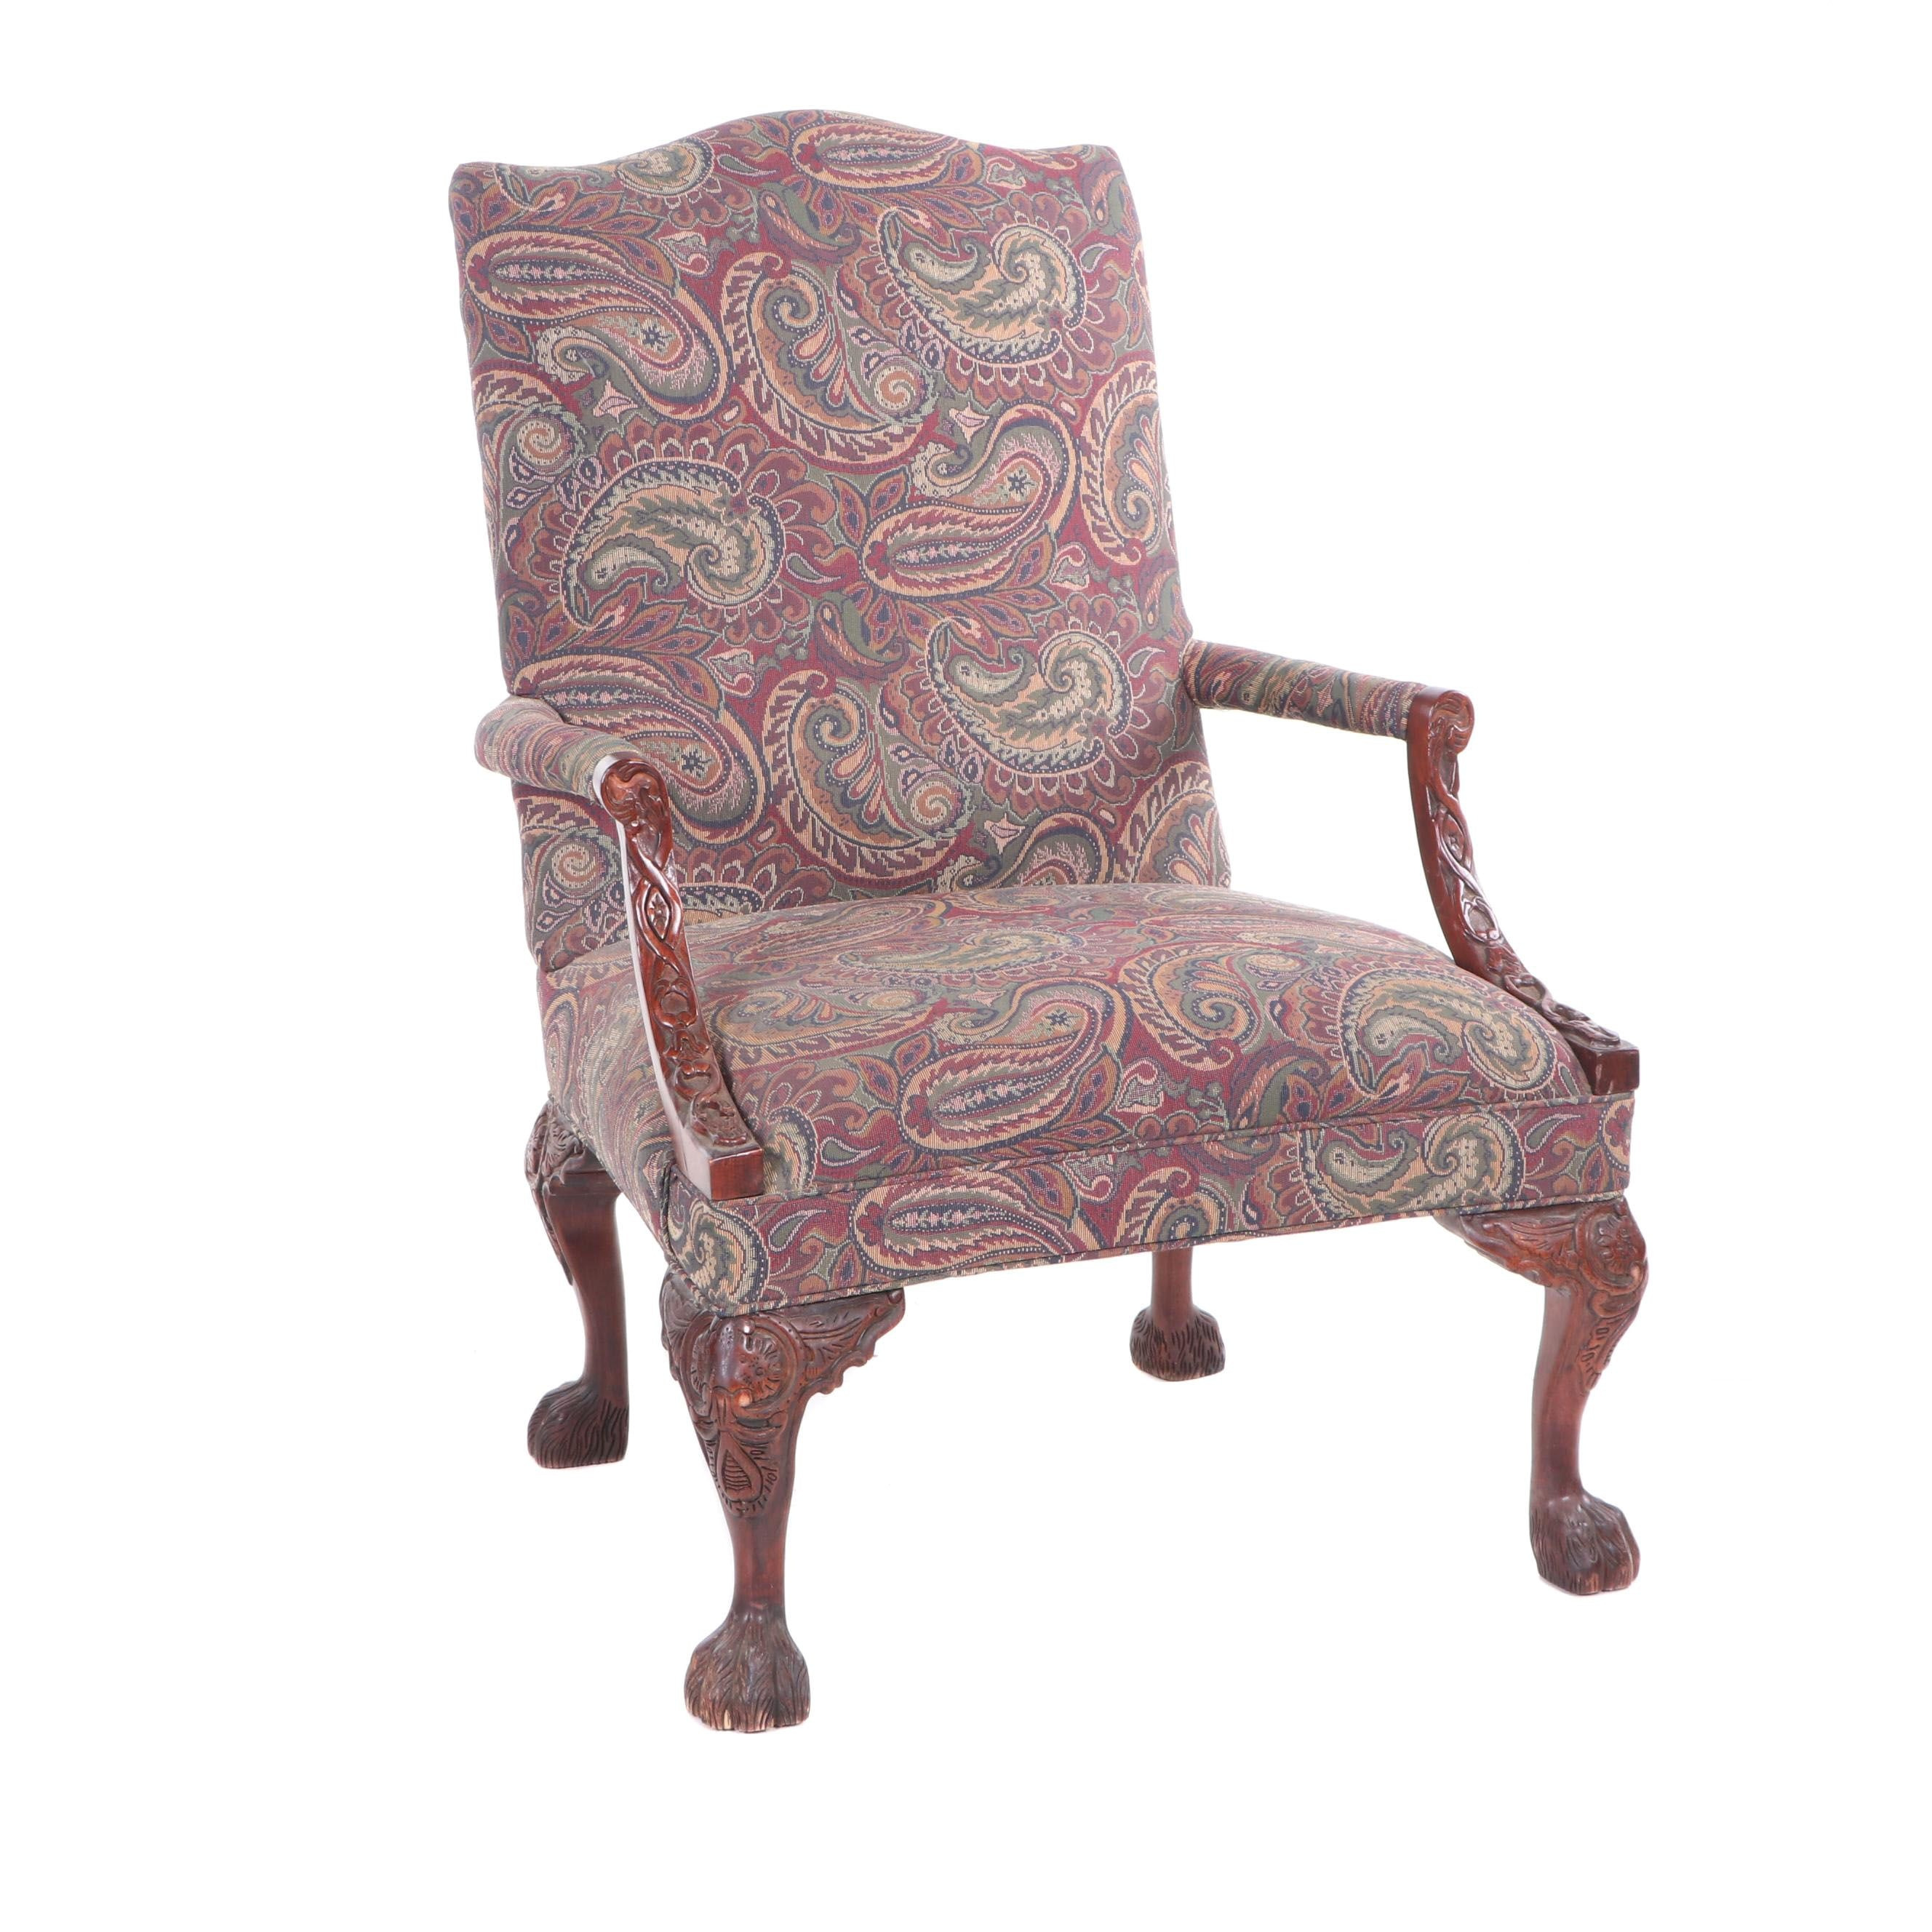 Chippendale Style Mahogany Finish Paisley Upholstered Armchair